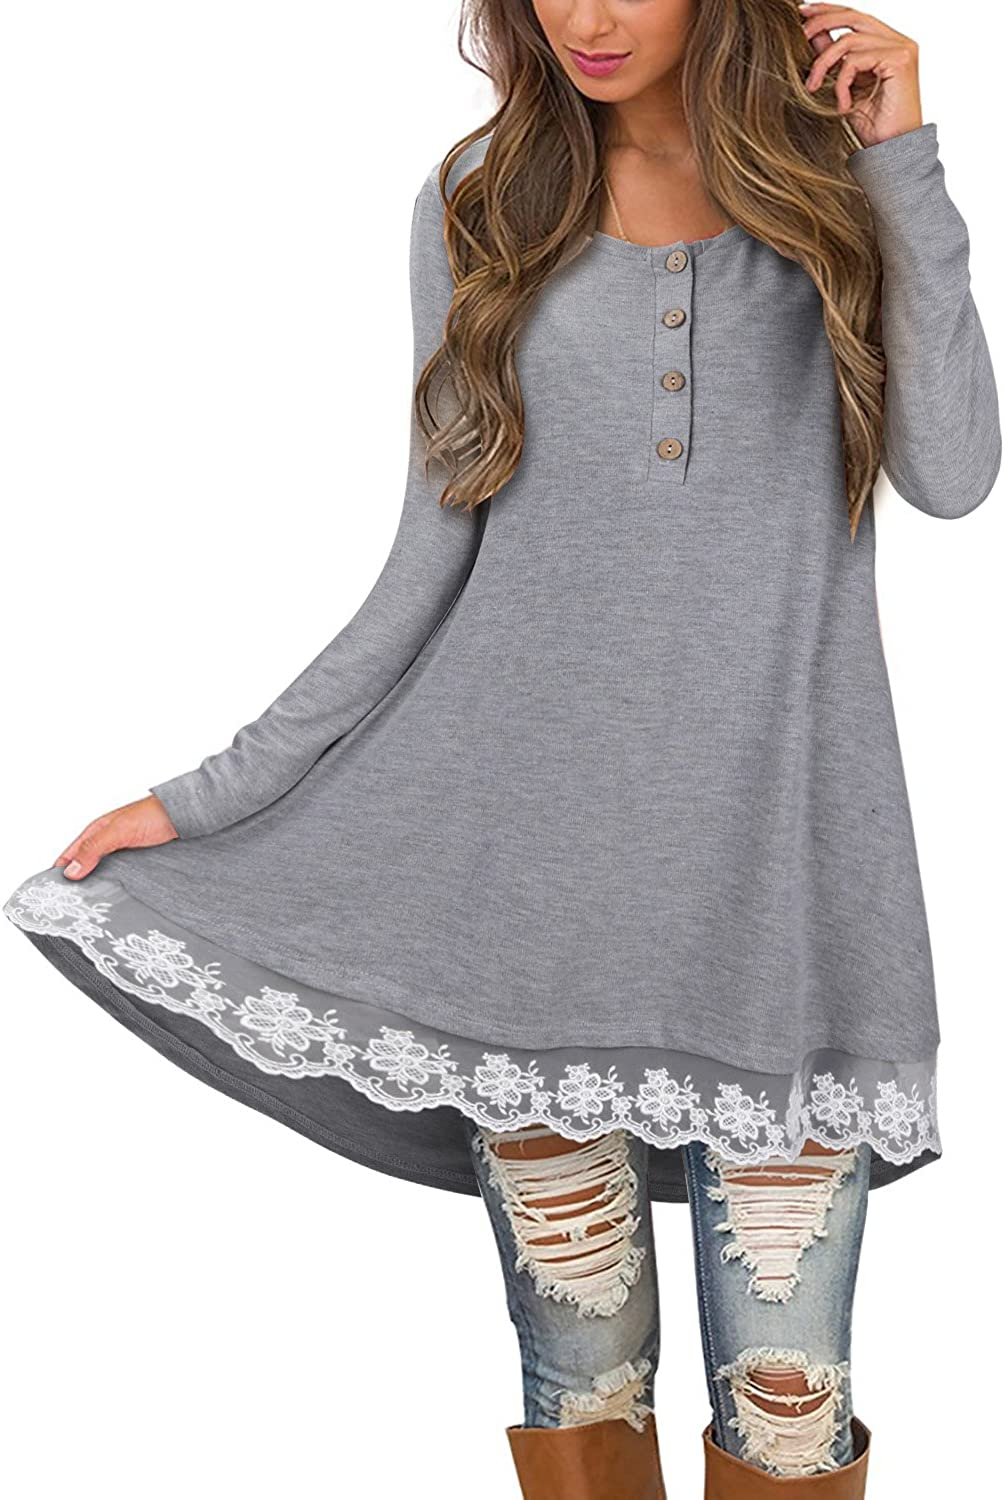 STYLEWORD Women's Long Sleeve Round Neck Button Top Lace Sales of SALE items from new works Fashionable Tunic U